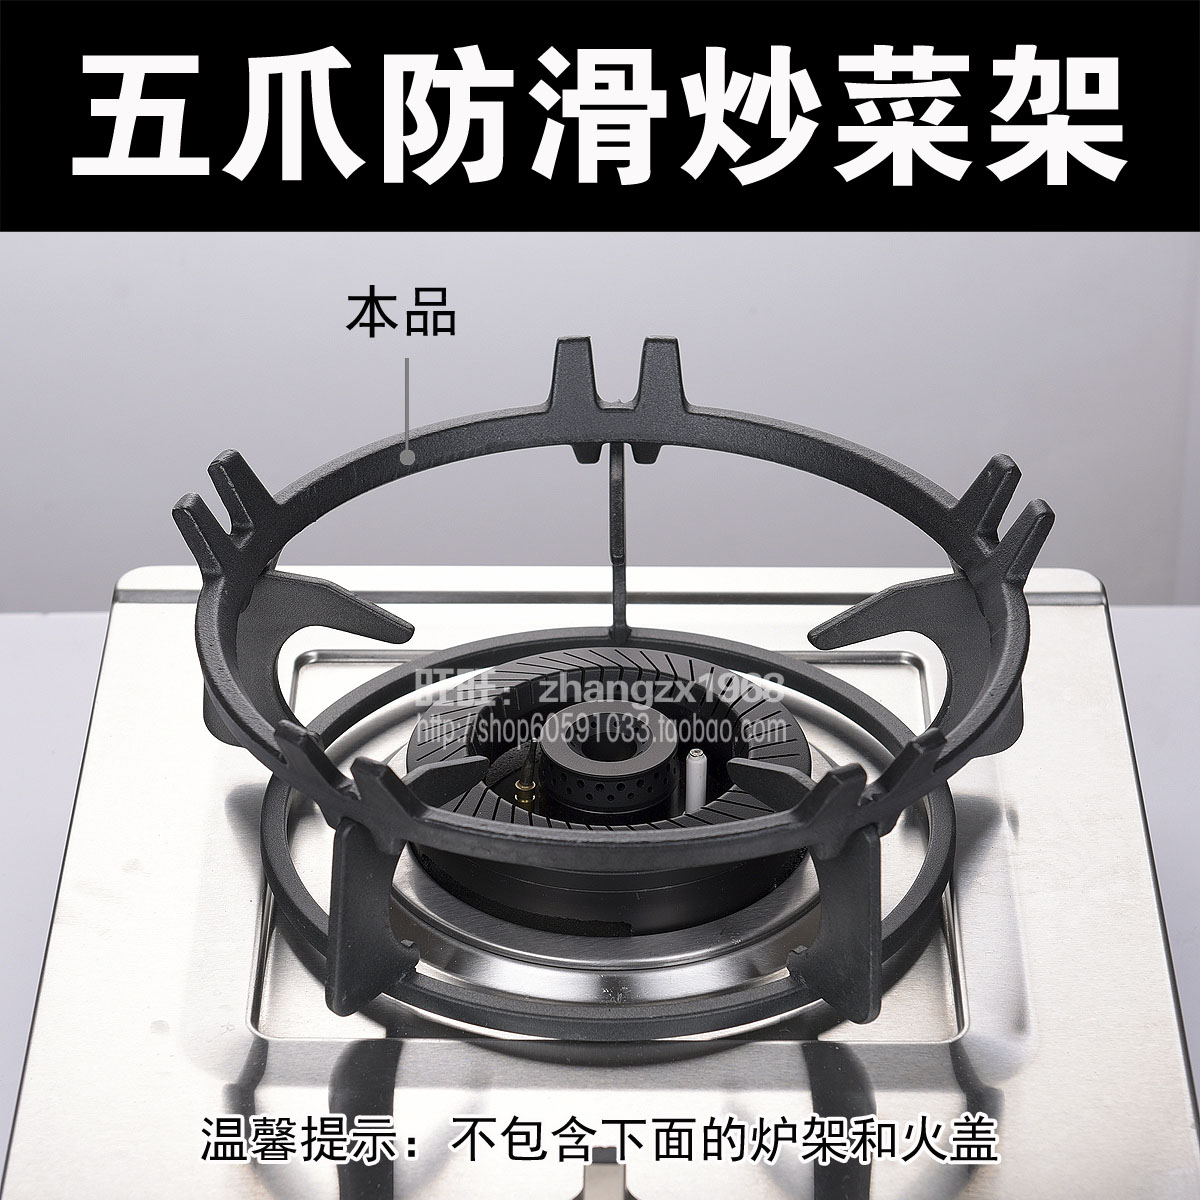 kitchen aid gas cooktop second hand units 架子大全 海瀾廚房電器及配件 淘寶海外 燃气灶支架炒菜锅防滑架子支架辅助架炒锅铸铁防滑小锅架五爪